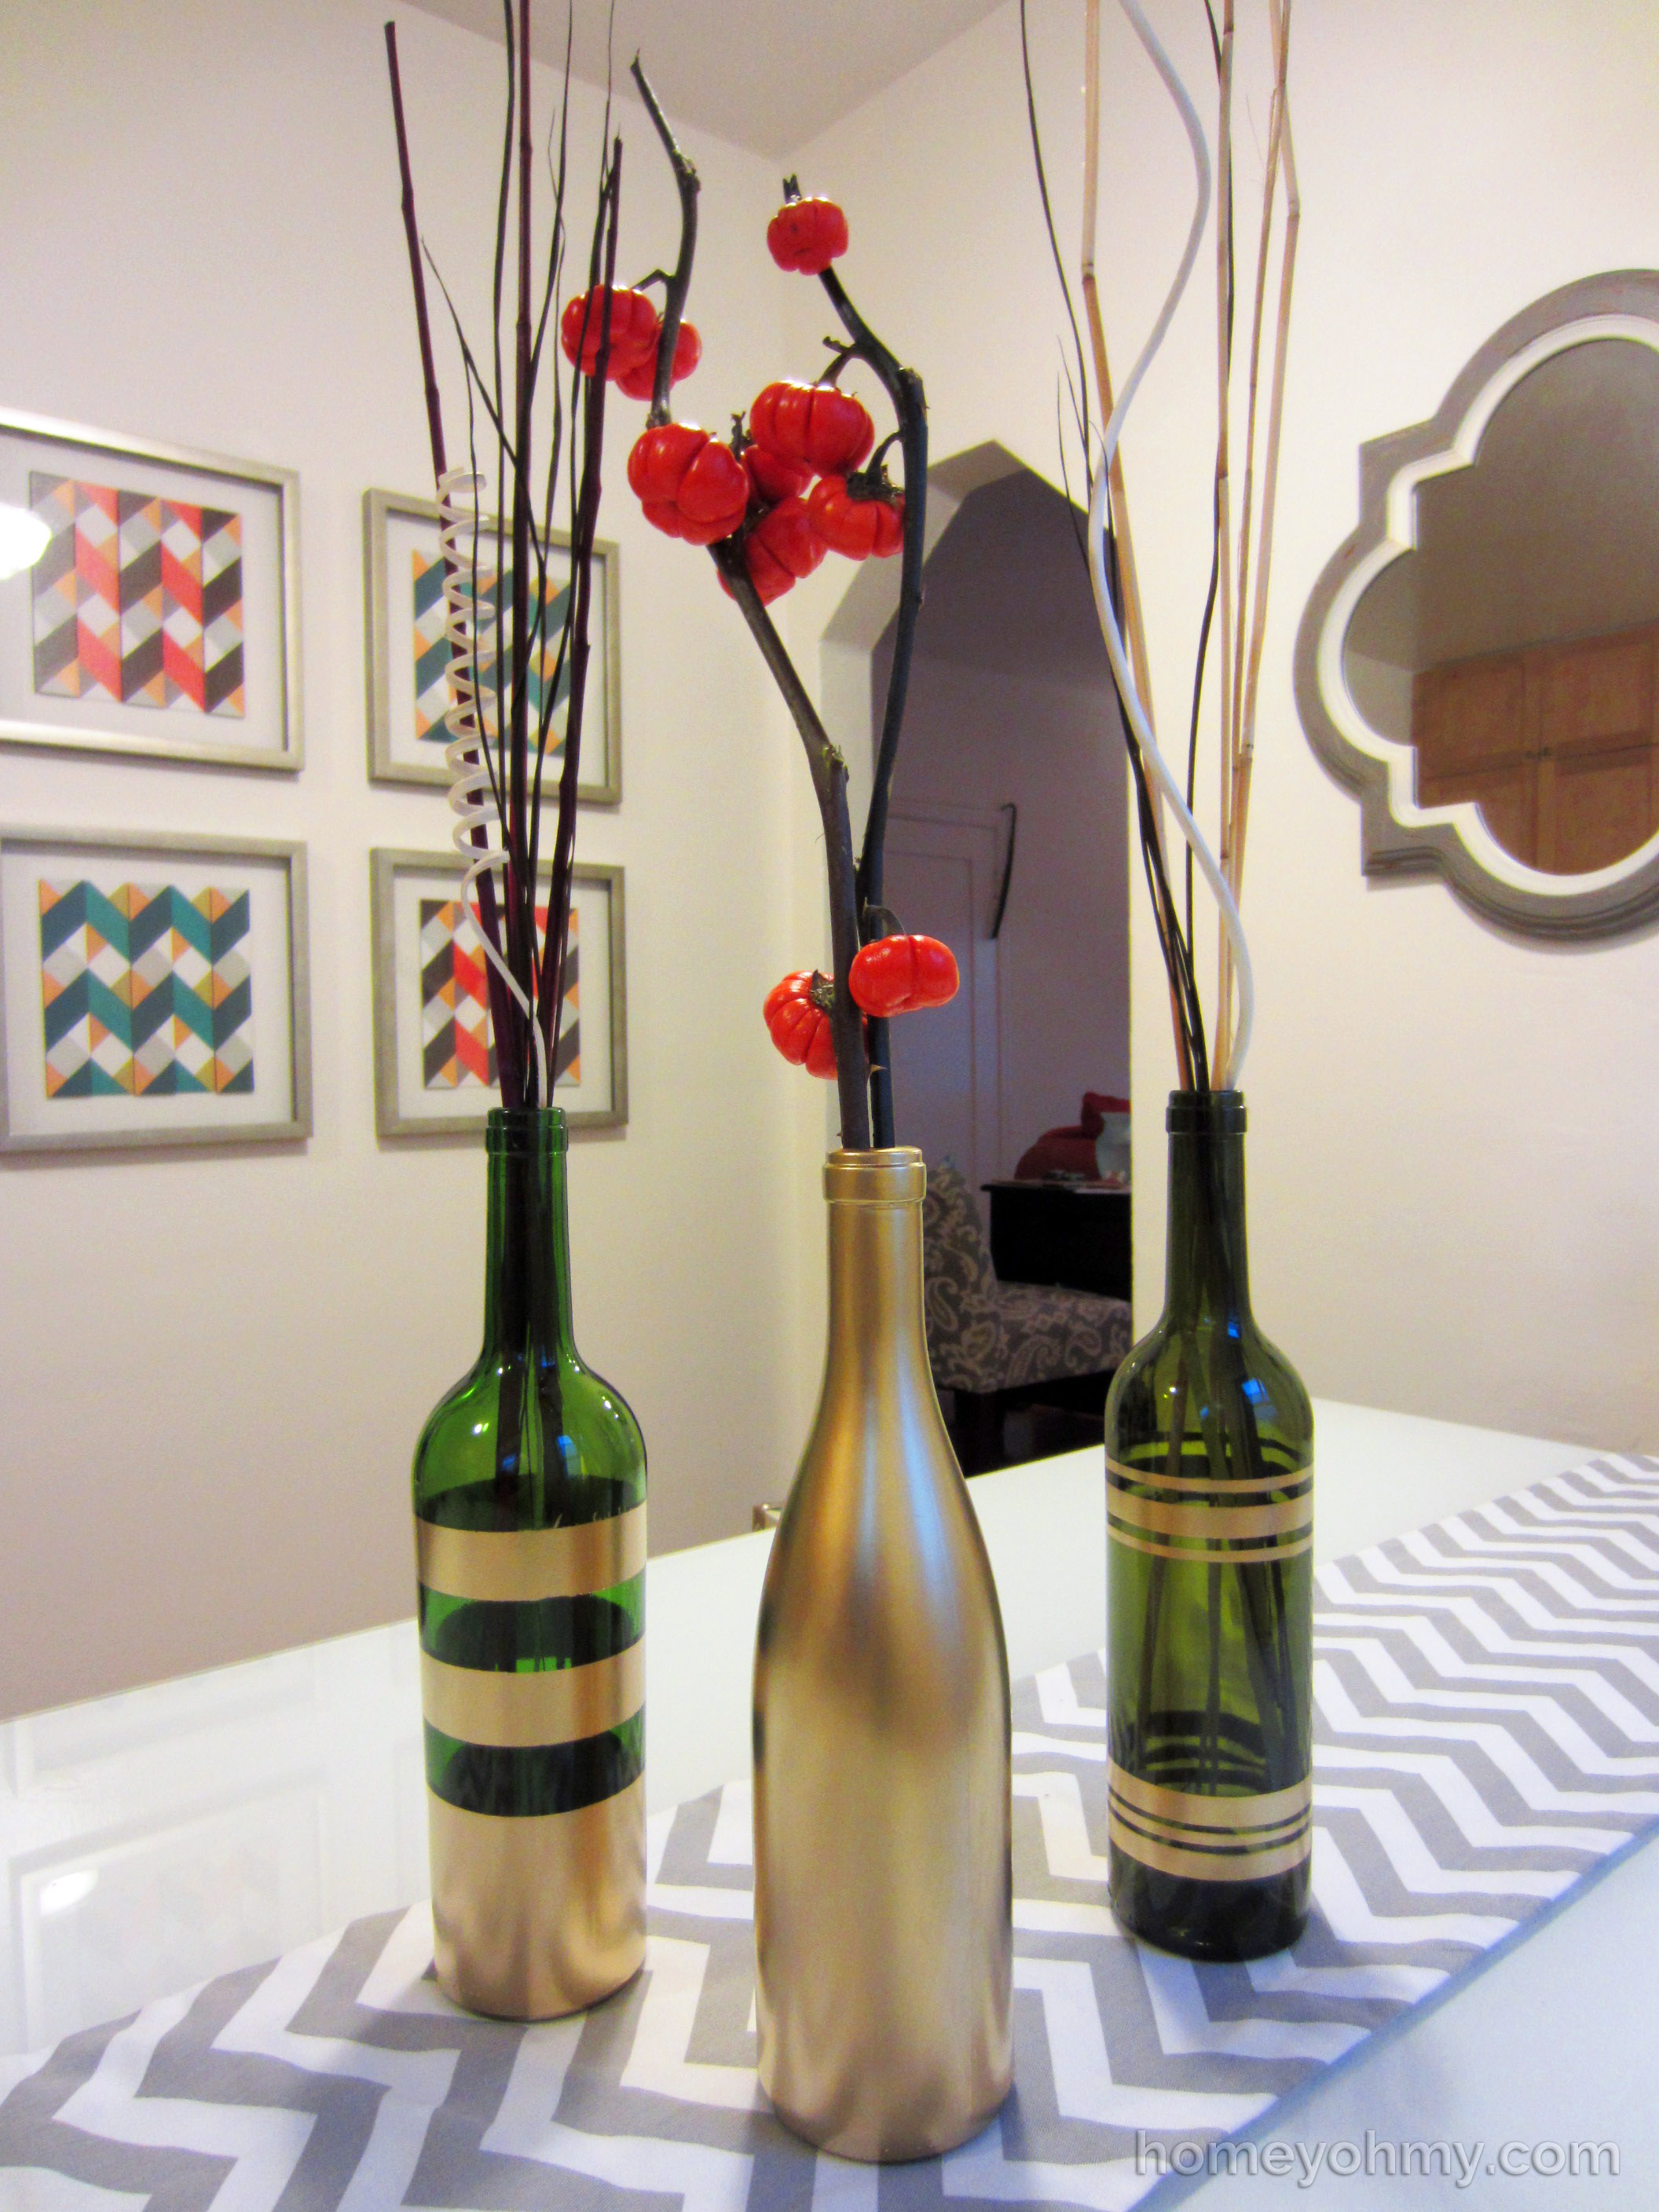 Awesome DIY Spray Painted Wine Bottles 3 Home Design Ideas